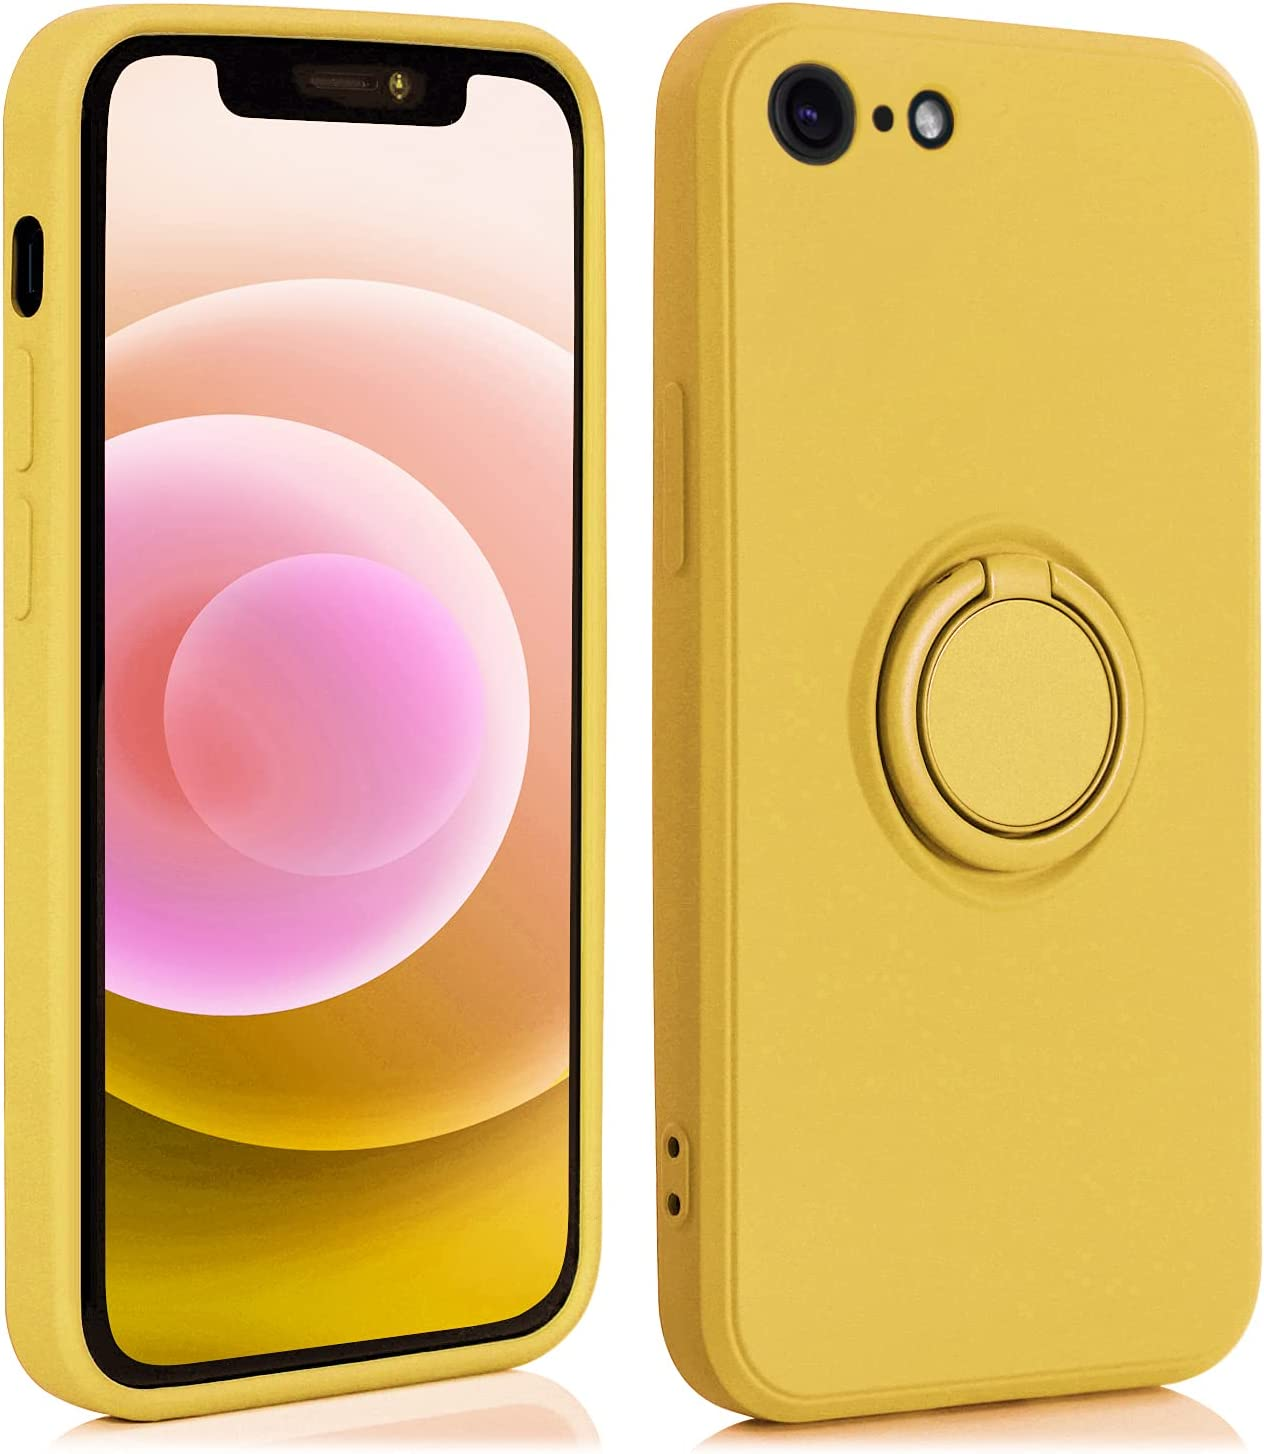 AslabCrew iPhone SE 2020 Case with 360°Ring Holder Kickstand, Shockproof Bumper Soft TPU Protective Smartphone Cover, Yellow